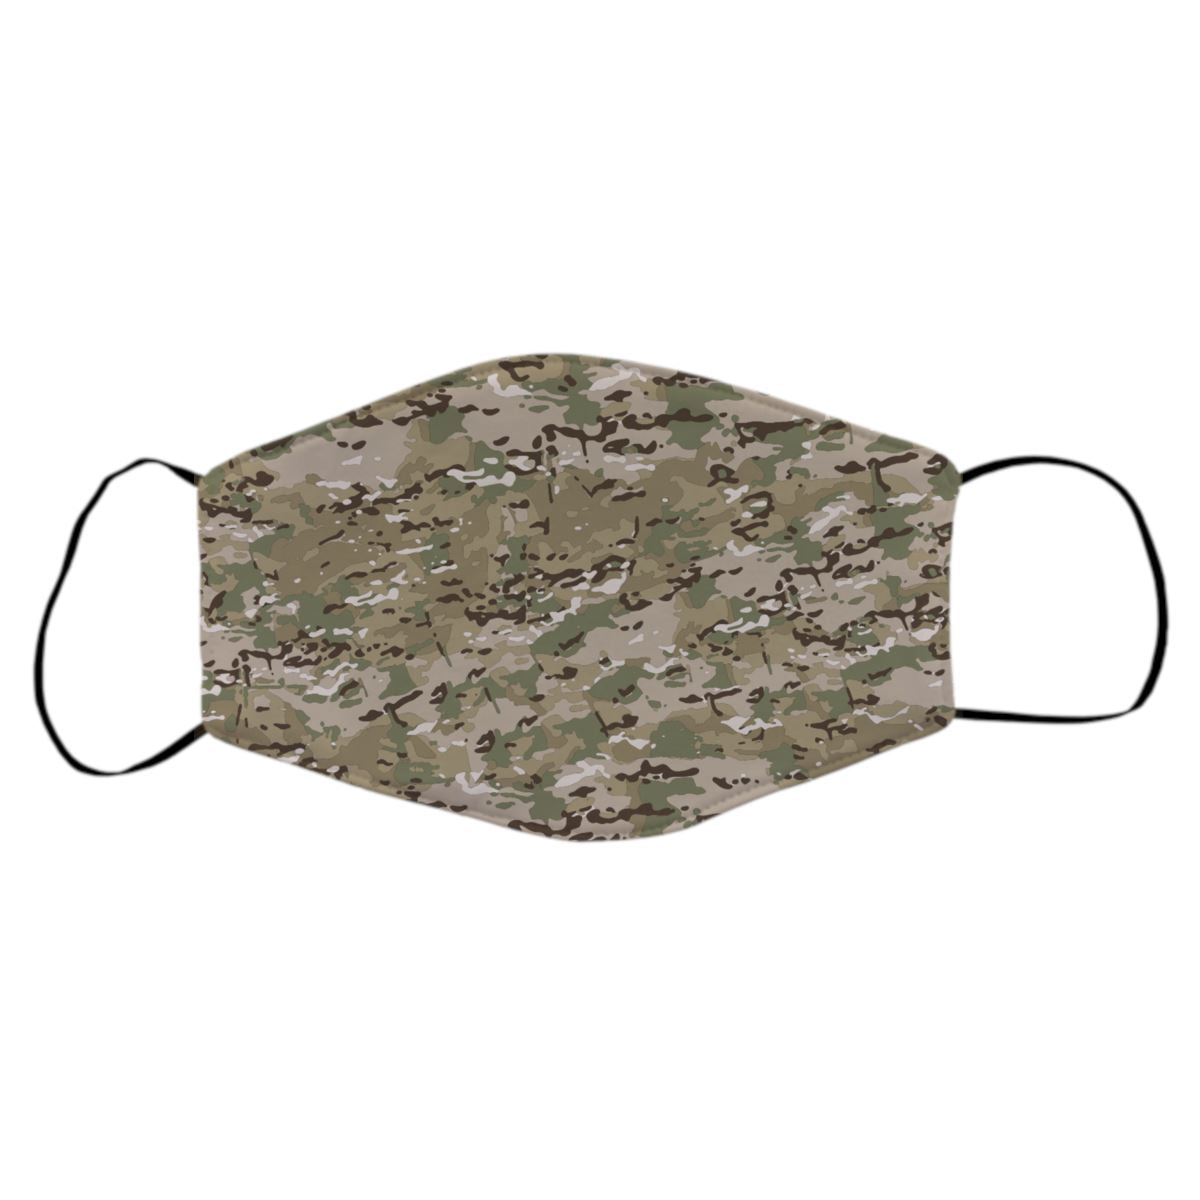 Reusable Face Mask - Green Multicam Protective Masks Print Brains Multicam